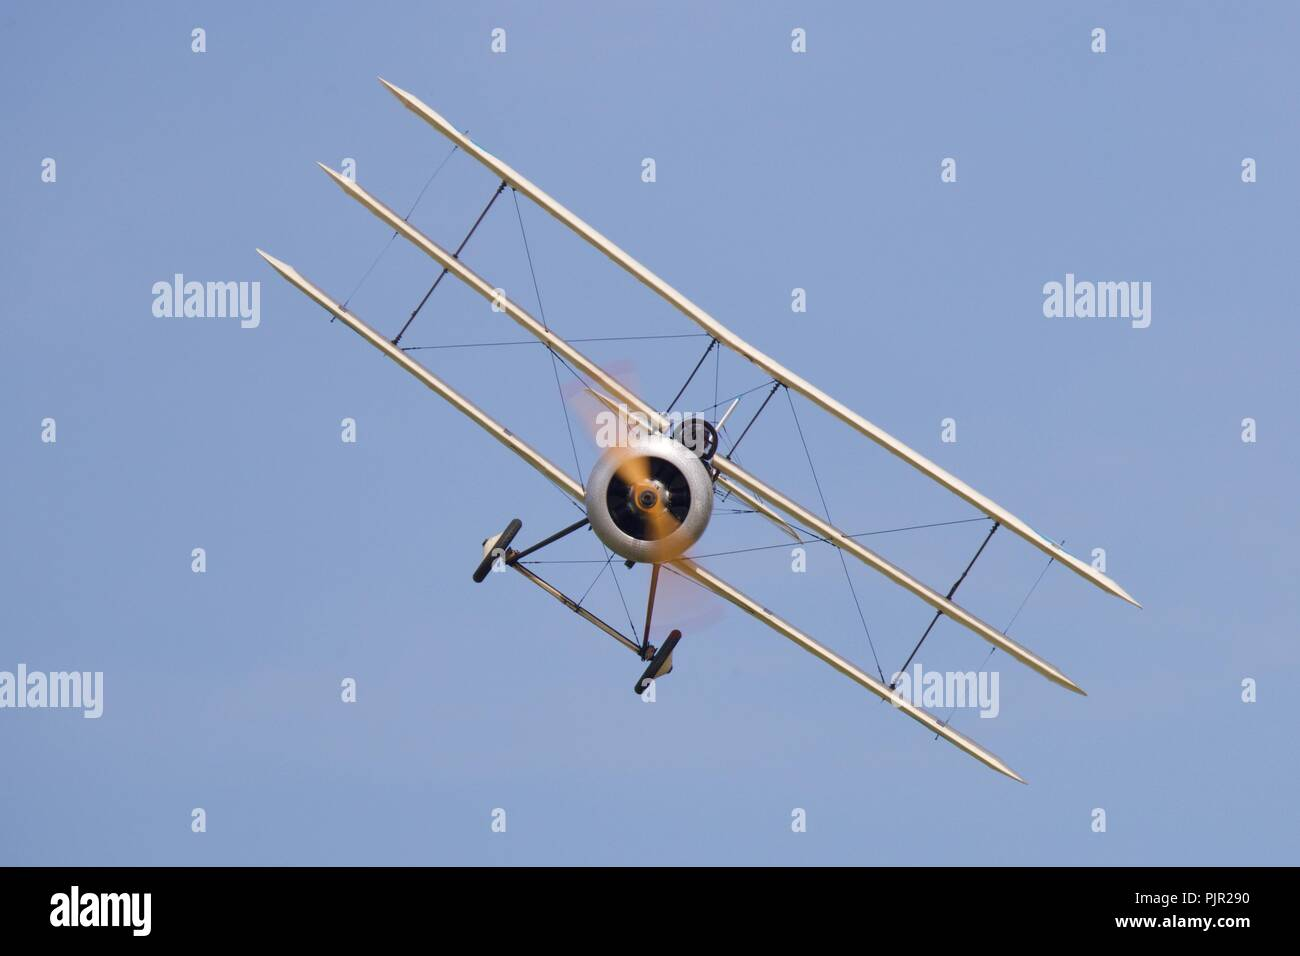 Bremont Great War Display Team - Sopwith Triplane N500 Stock Photo